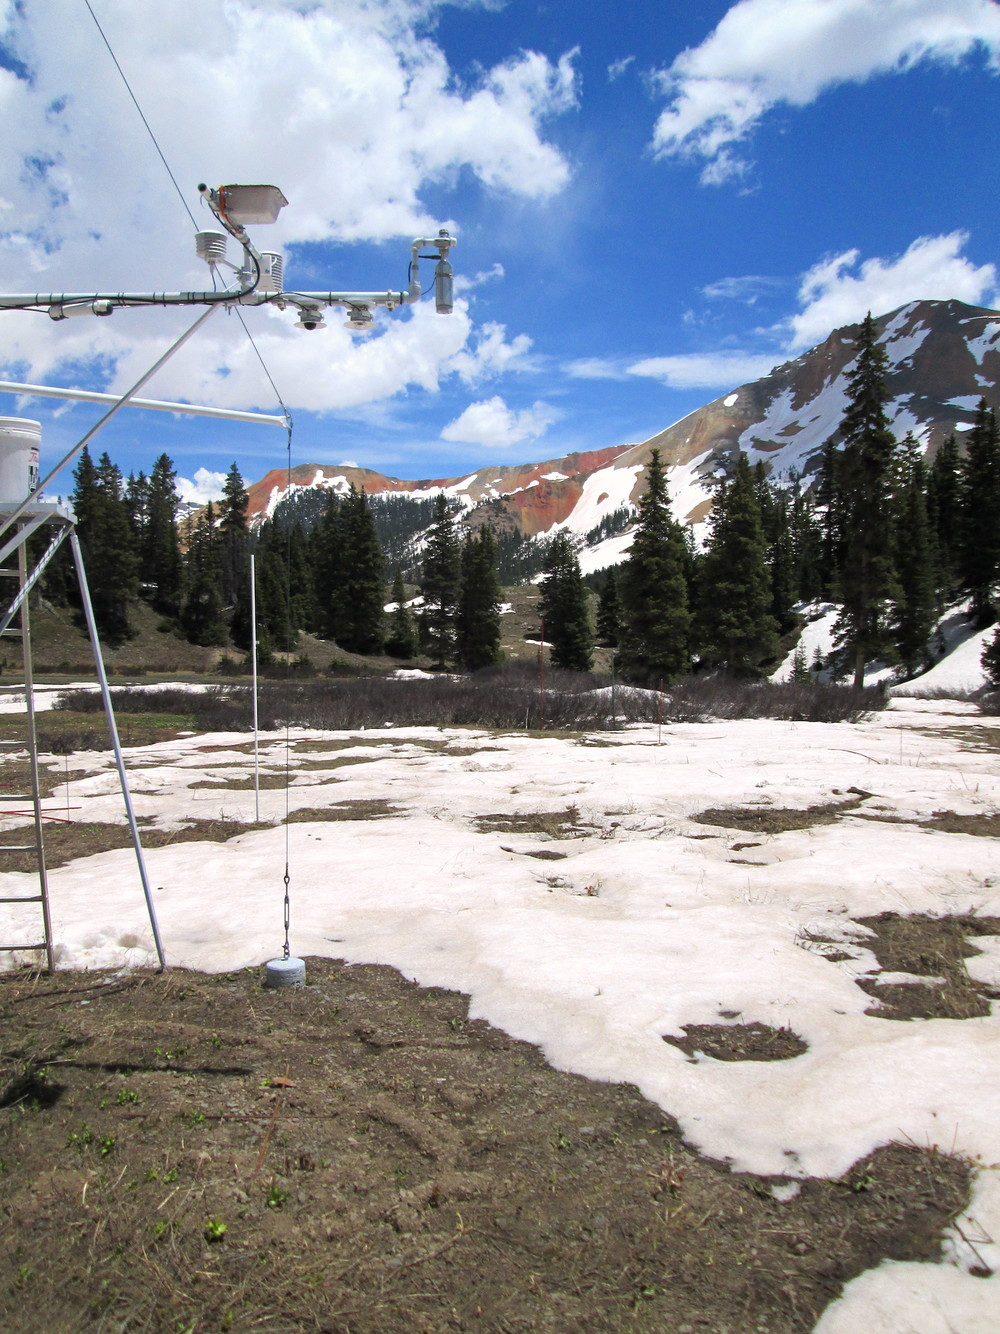 Photo of SASP snow profile sampling area on June 9 with climate station in foreground.  Snow under SR50 snow-depth sensor is now depleted.  Only a few inches of discontinuous snow remains in sample area.